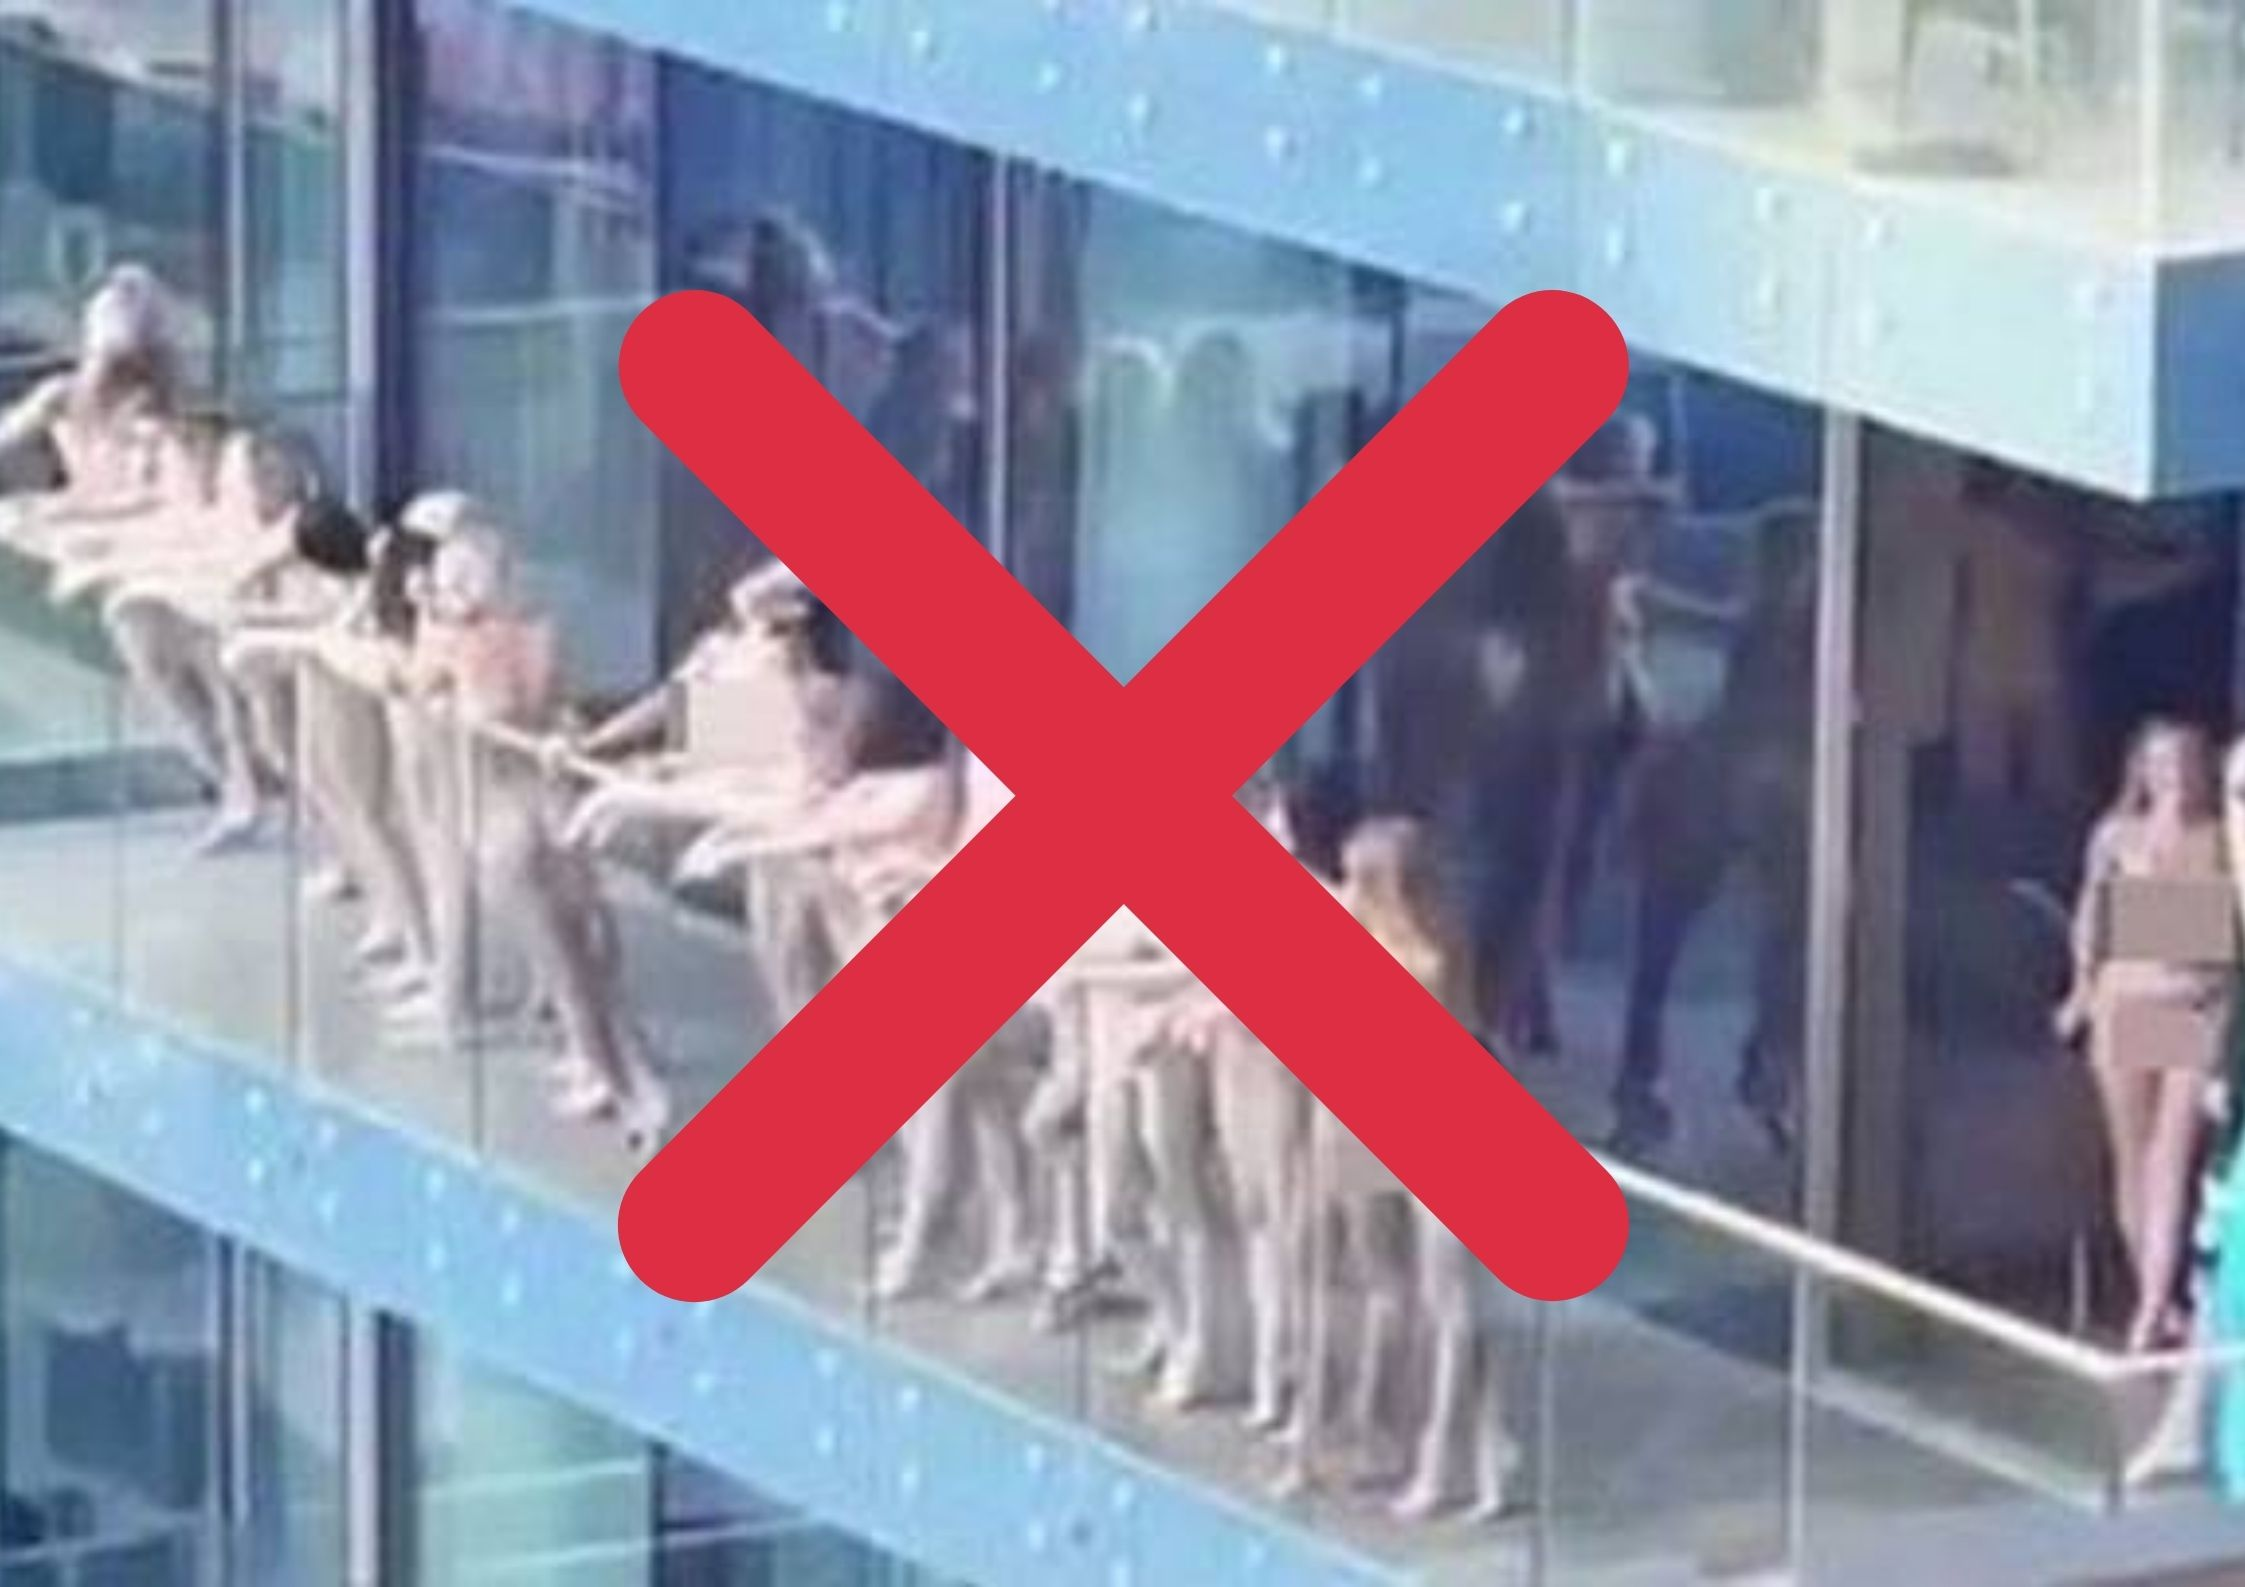 Nude Photoshoot in Dubai Gone Wrong: 40 Women Arrested